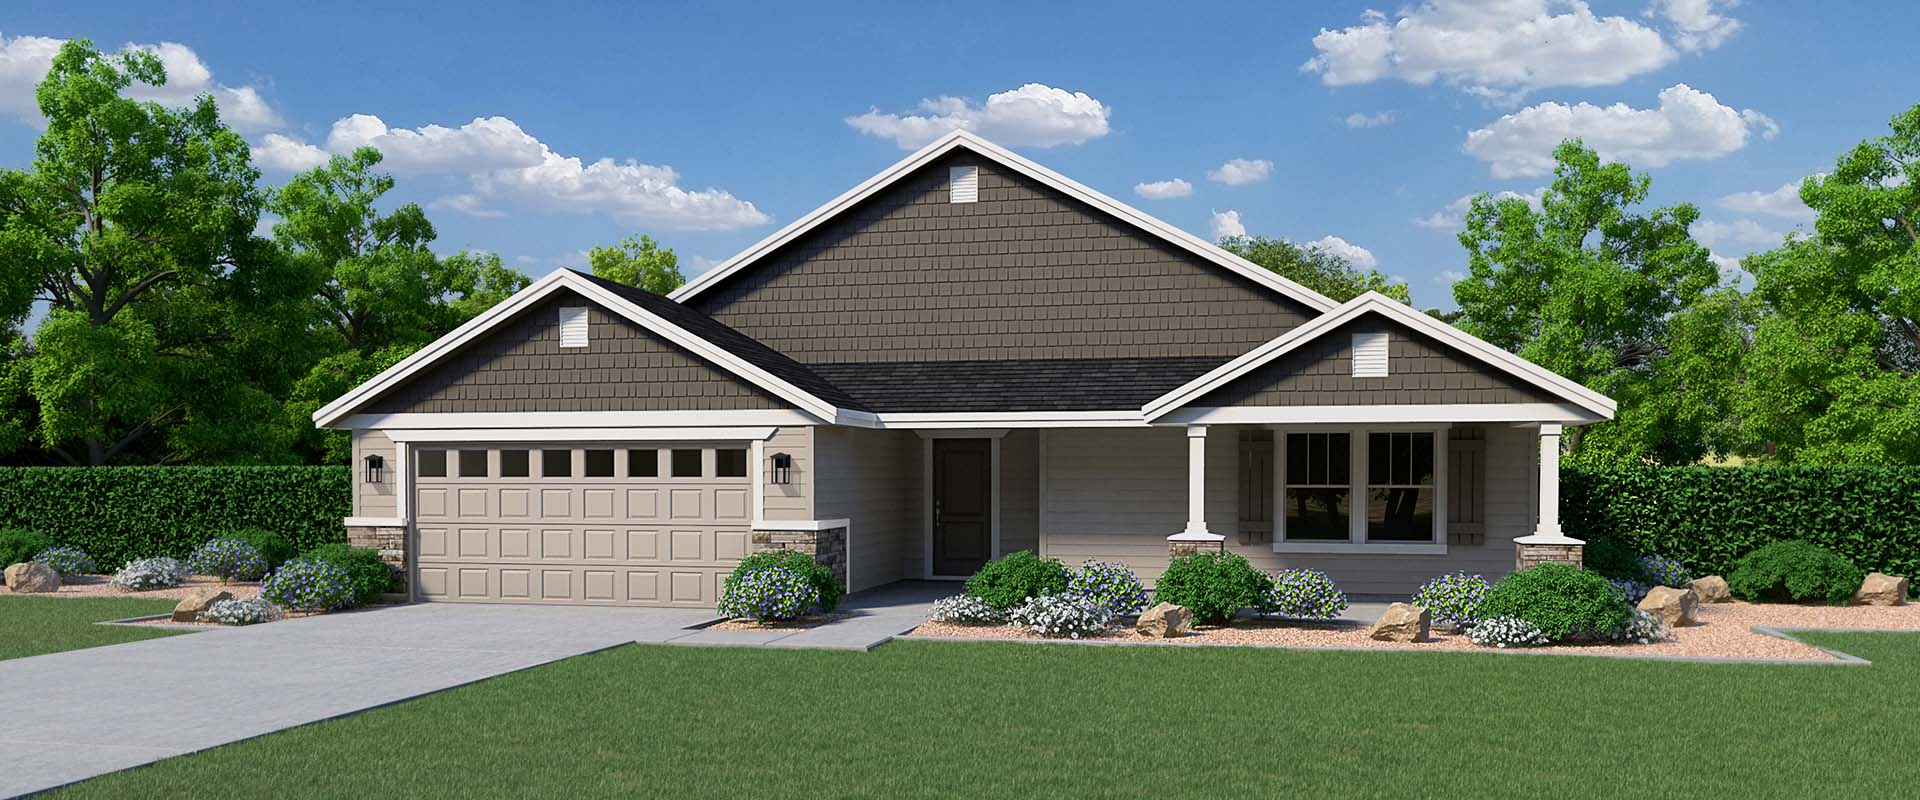 new-homes-boise-idaho-hubble-homes_0015_Sapphire Craftsman pack 52.jpg